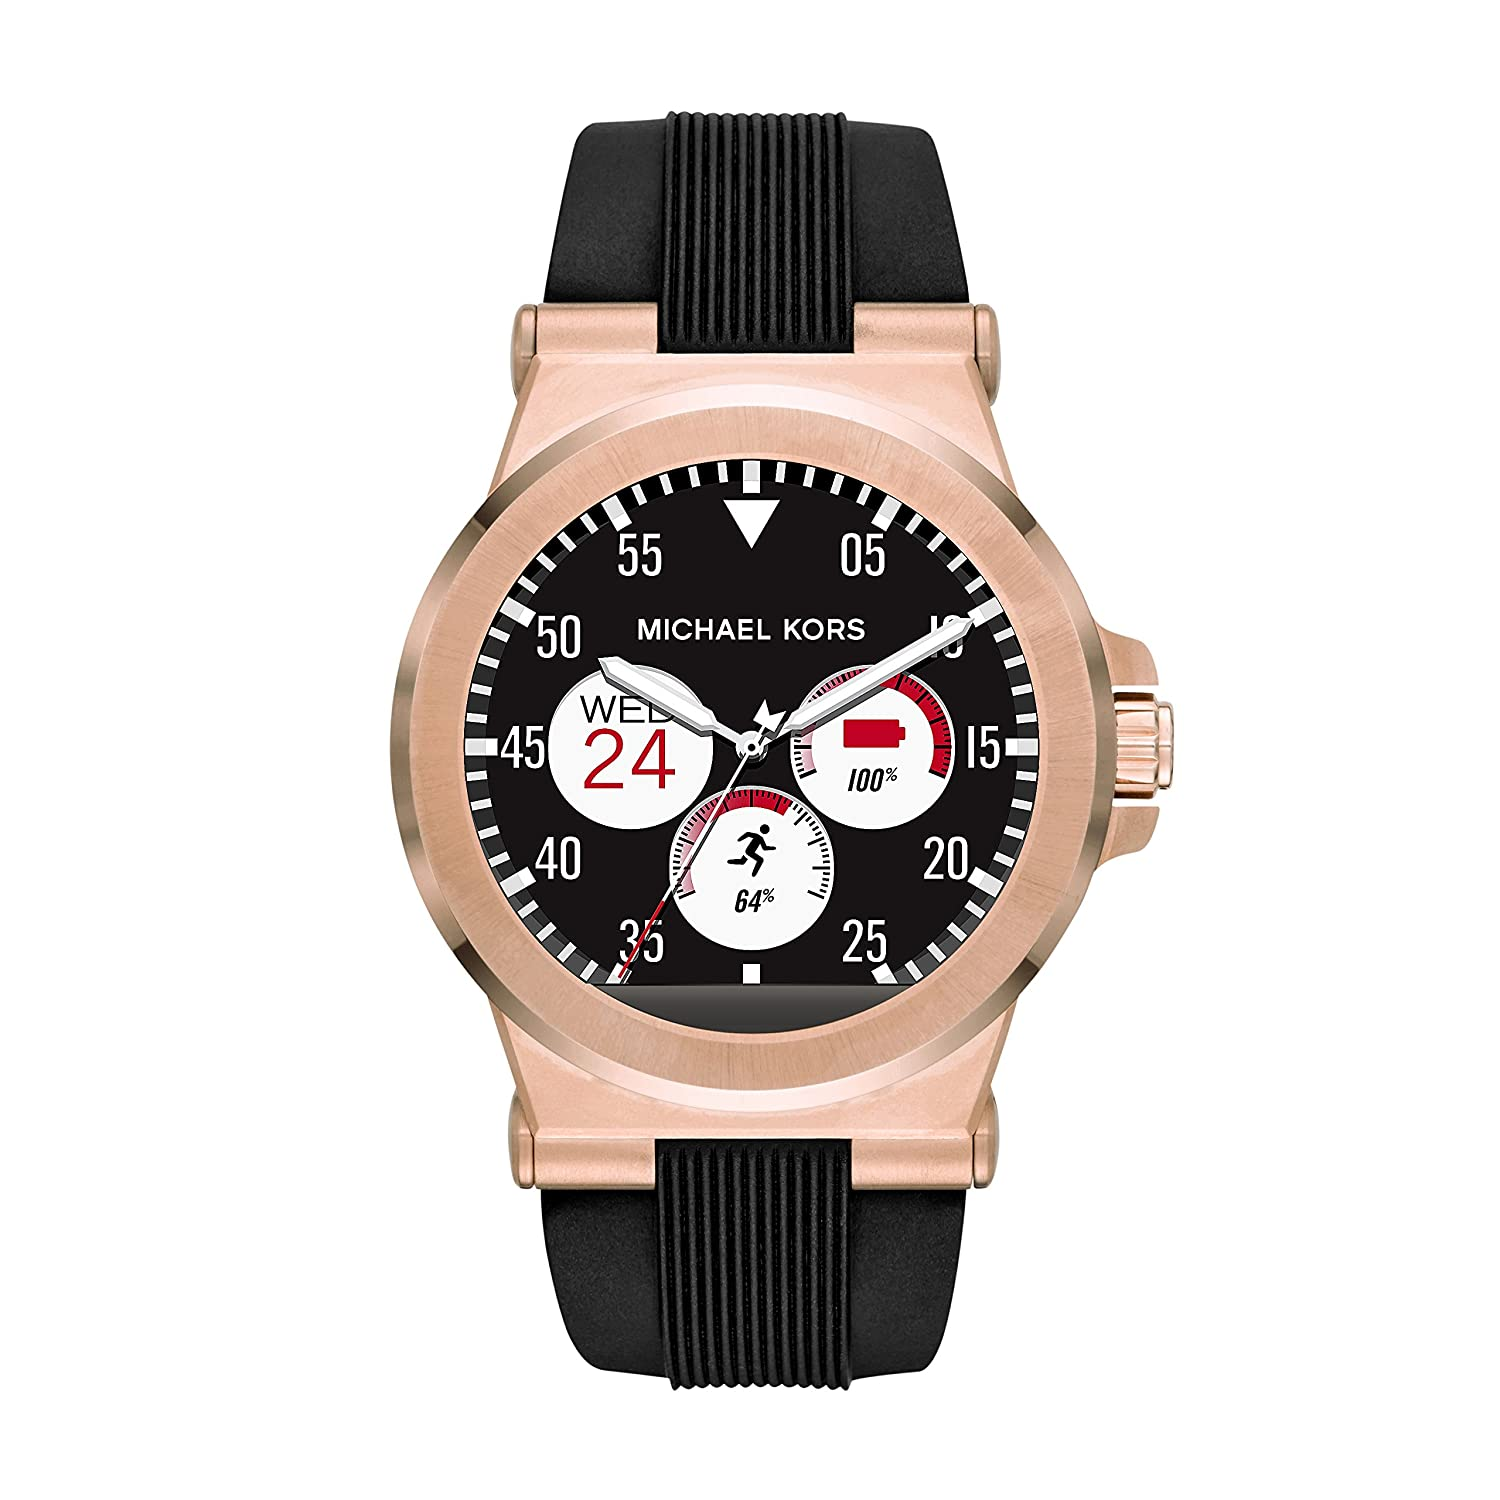 ef5be832d59a Amazon.com: Michael Kors Access, Men's Smartwatch, Dylan Rose Gold-Tone  Stainless Steel with Black Silicone, MKT5010: Watches